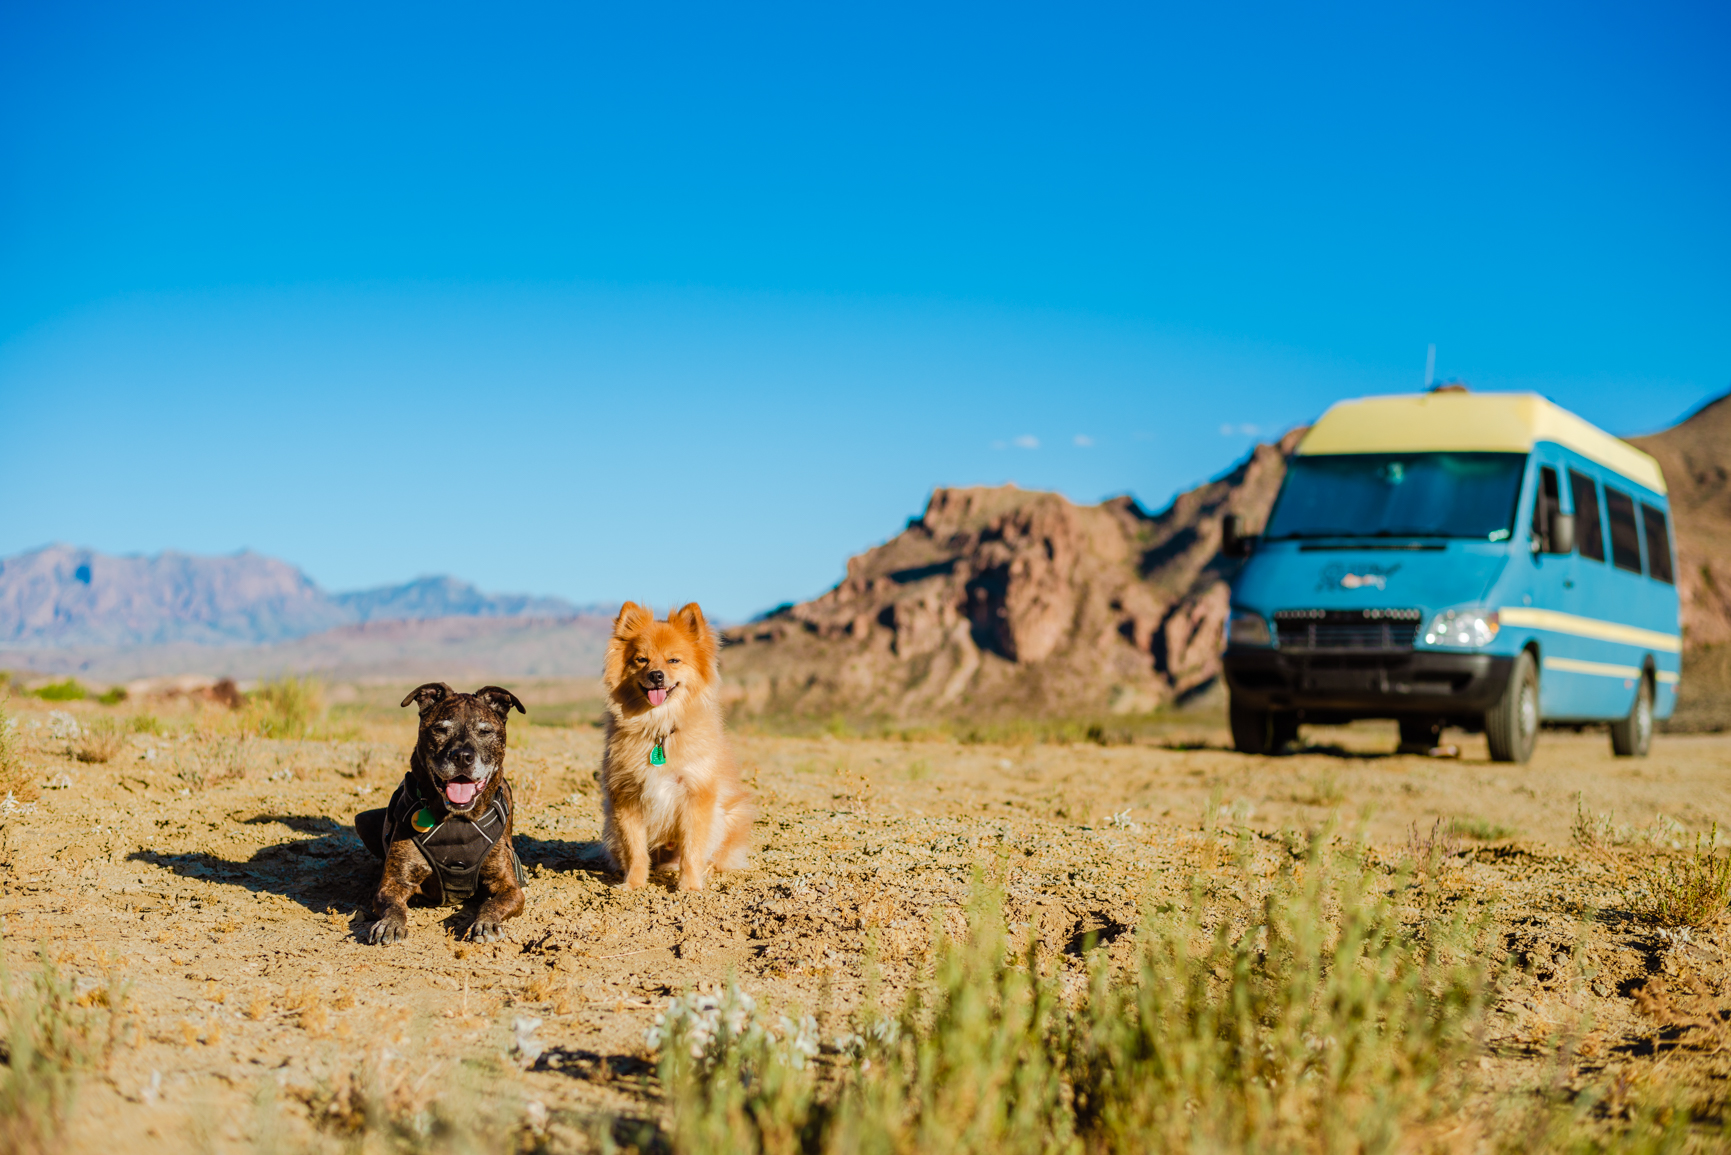 The dogs at our campsite outside of Big Bend